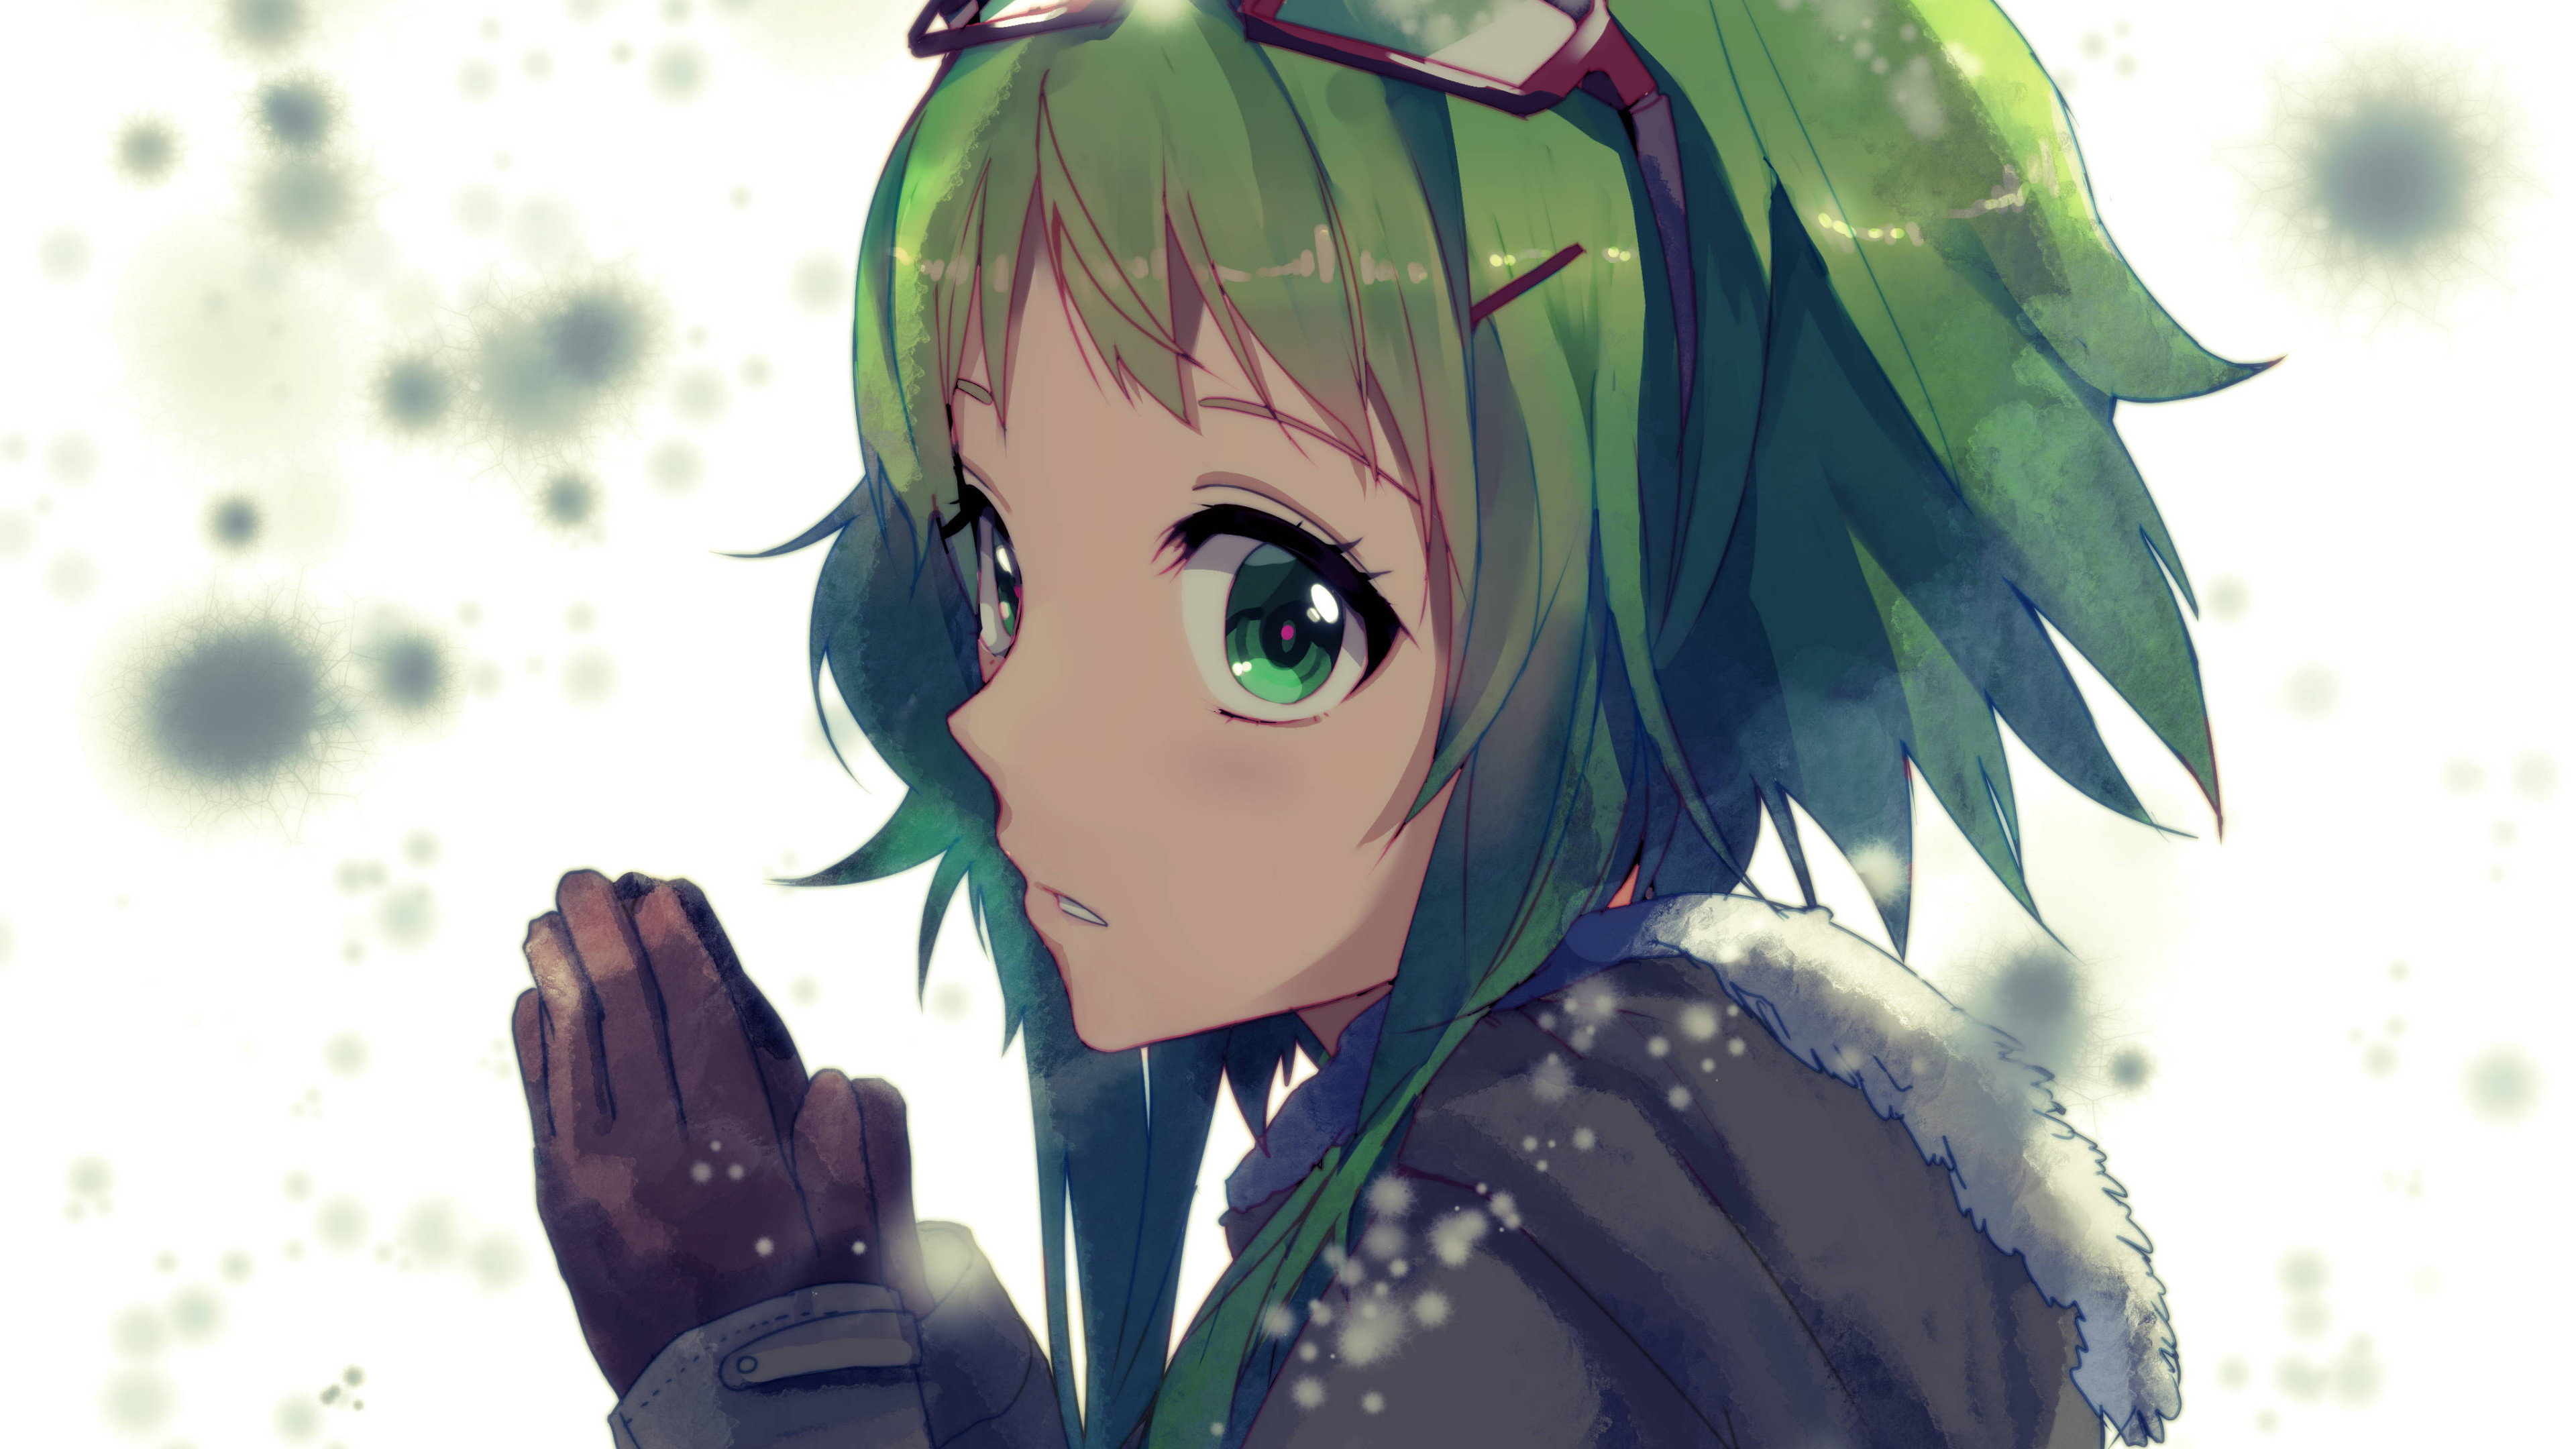 Free GUMI (Vocaloid) high quality wallpaper ID:845 for uhd 4k computer